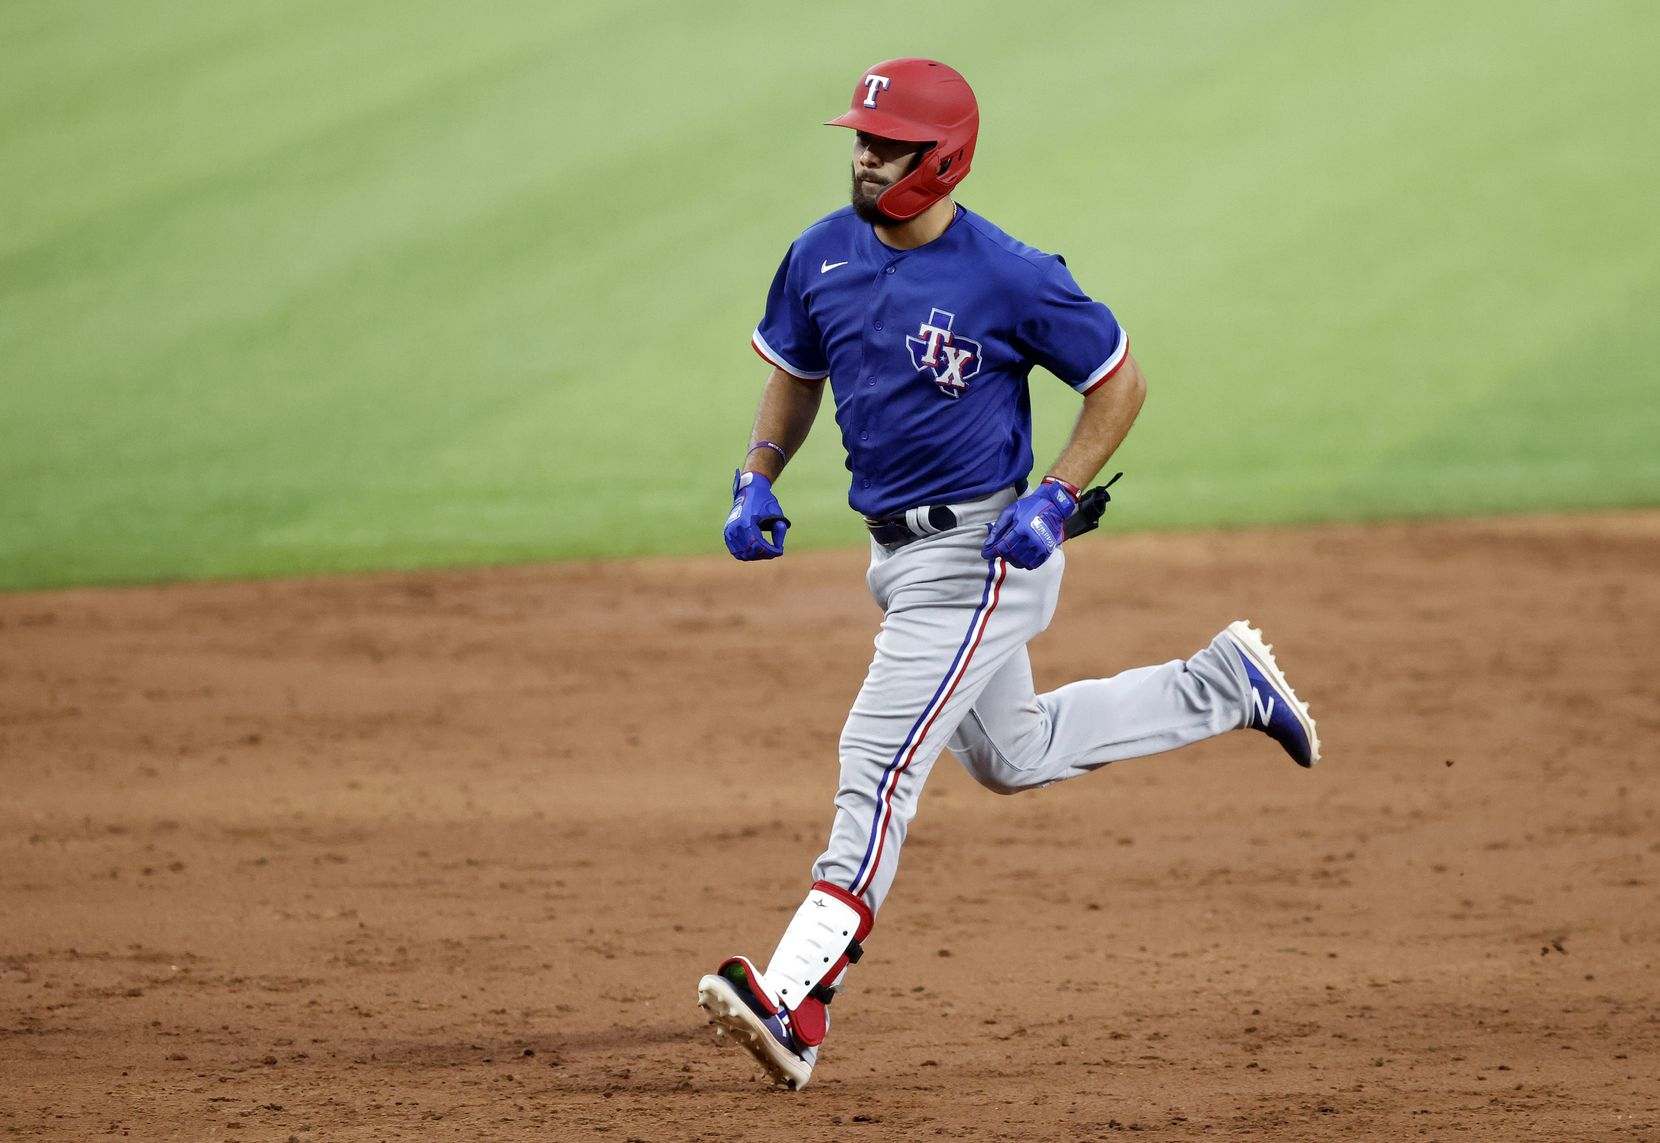 Texas Rangers Isiah Kiner-Falefa rounds the bases after his home run during a simulated Summer Camp game inside Globe Life Field in Arlington, Texas, Thursday, July 9, 2020.